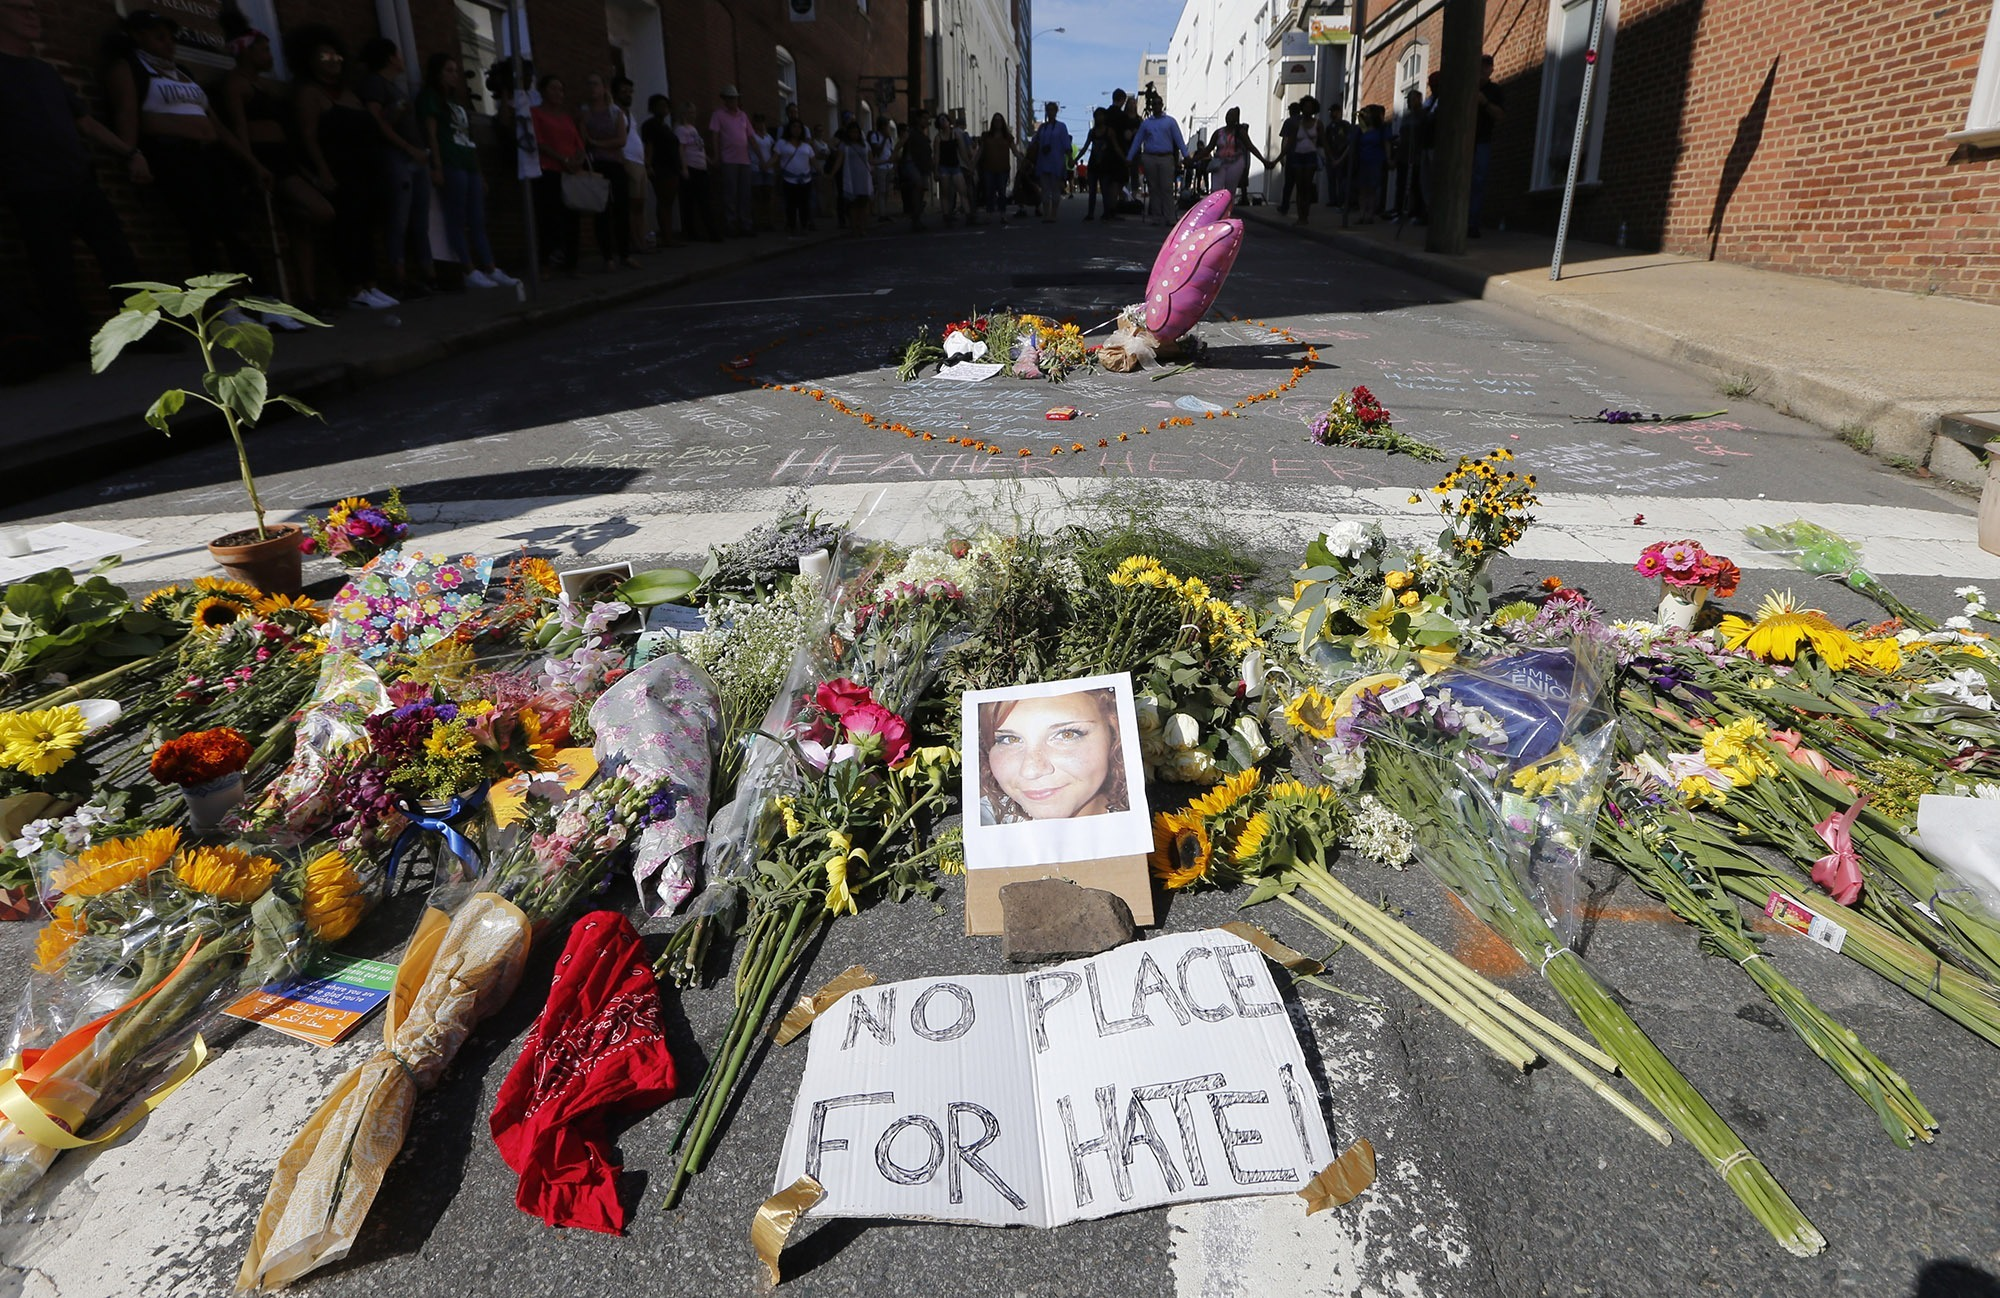 blog.ap.org - How to describe extremists who rallied in Charlottesville